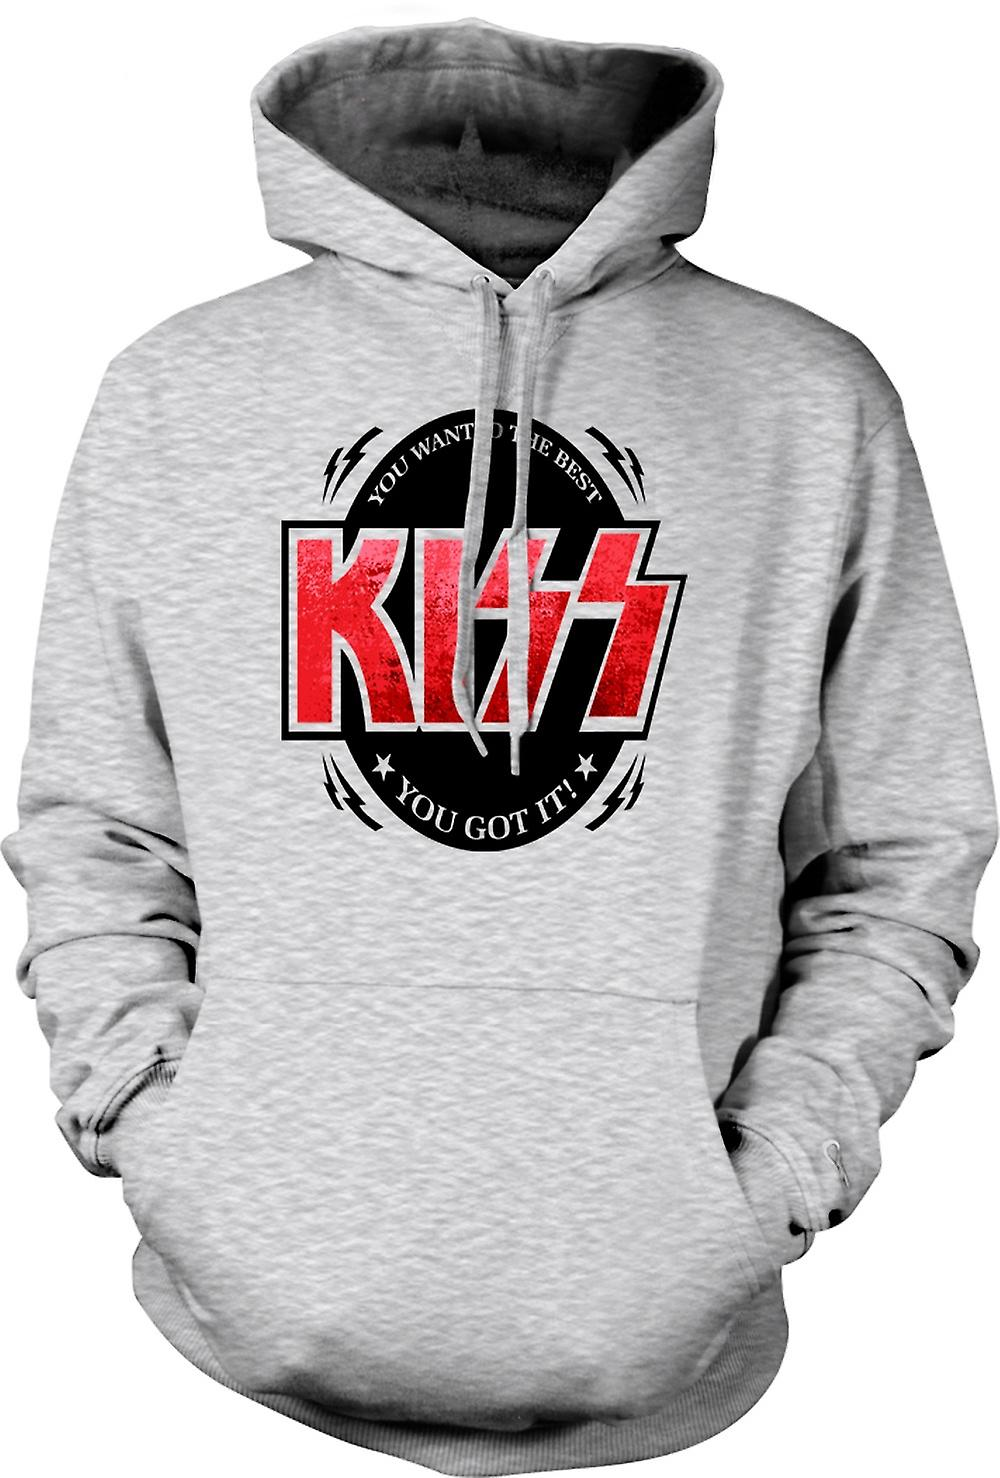 Mens Hoodie - Kiss - You Wanted The Best